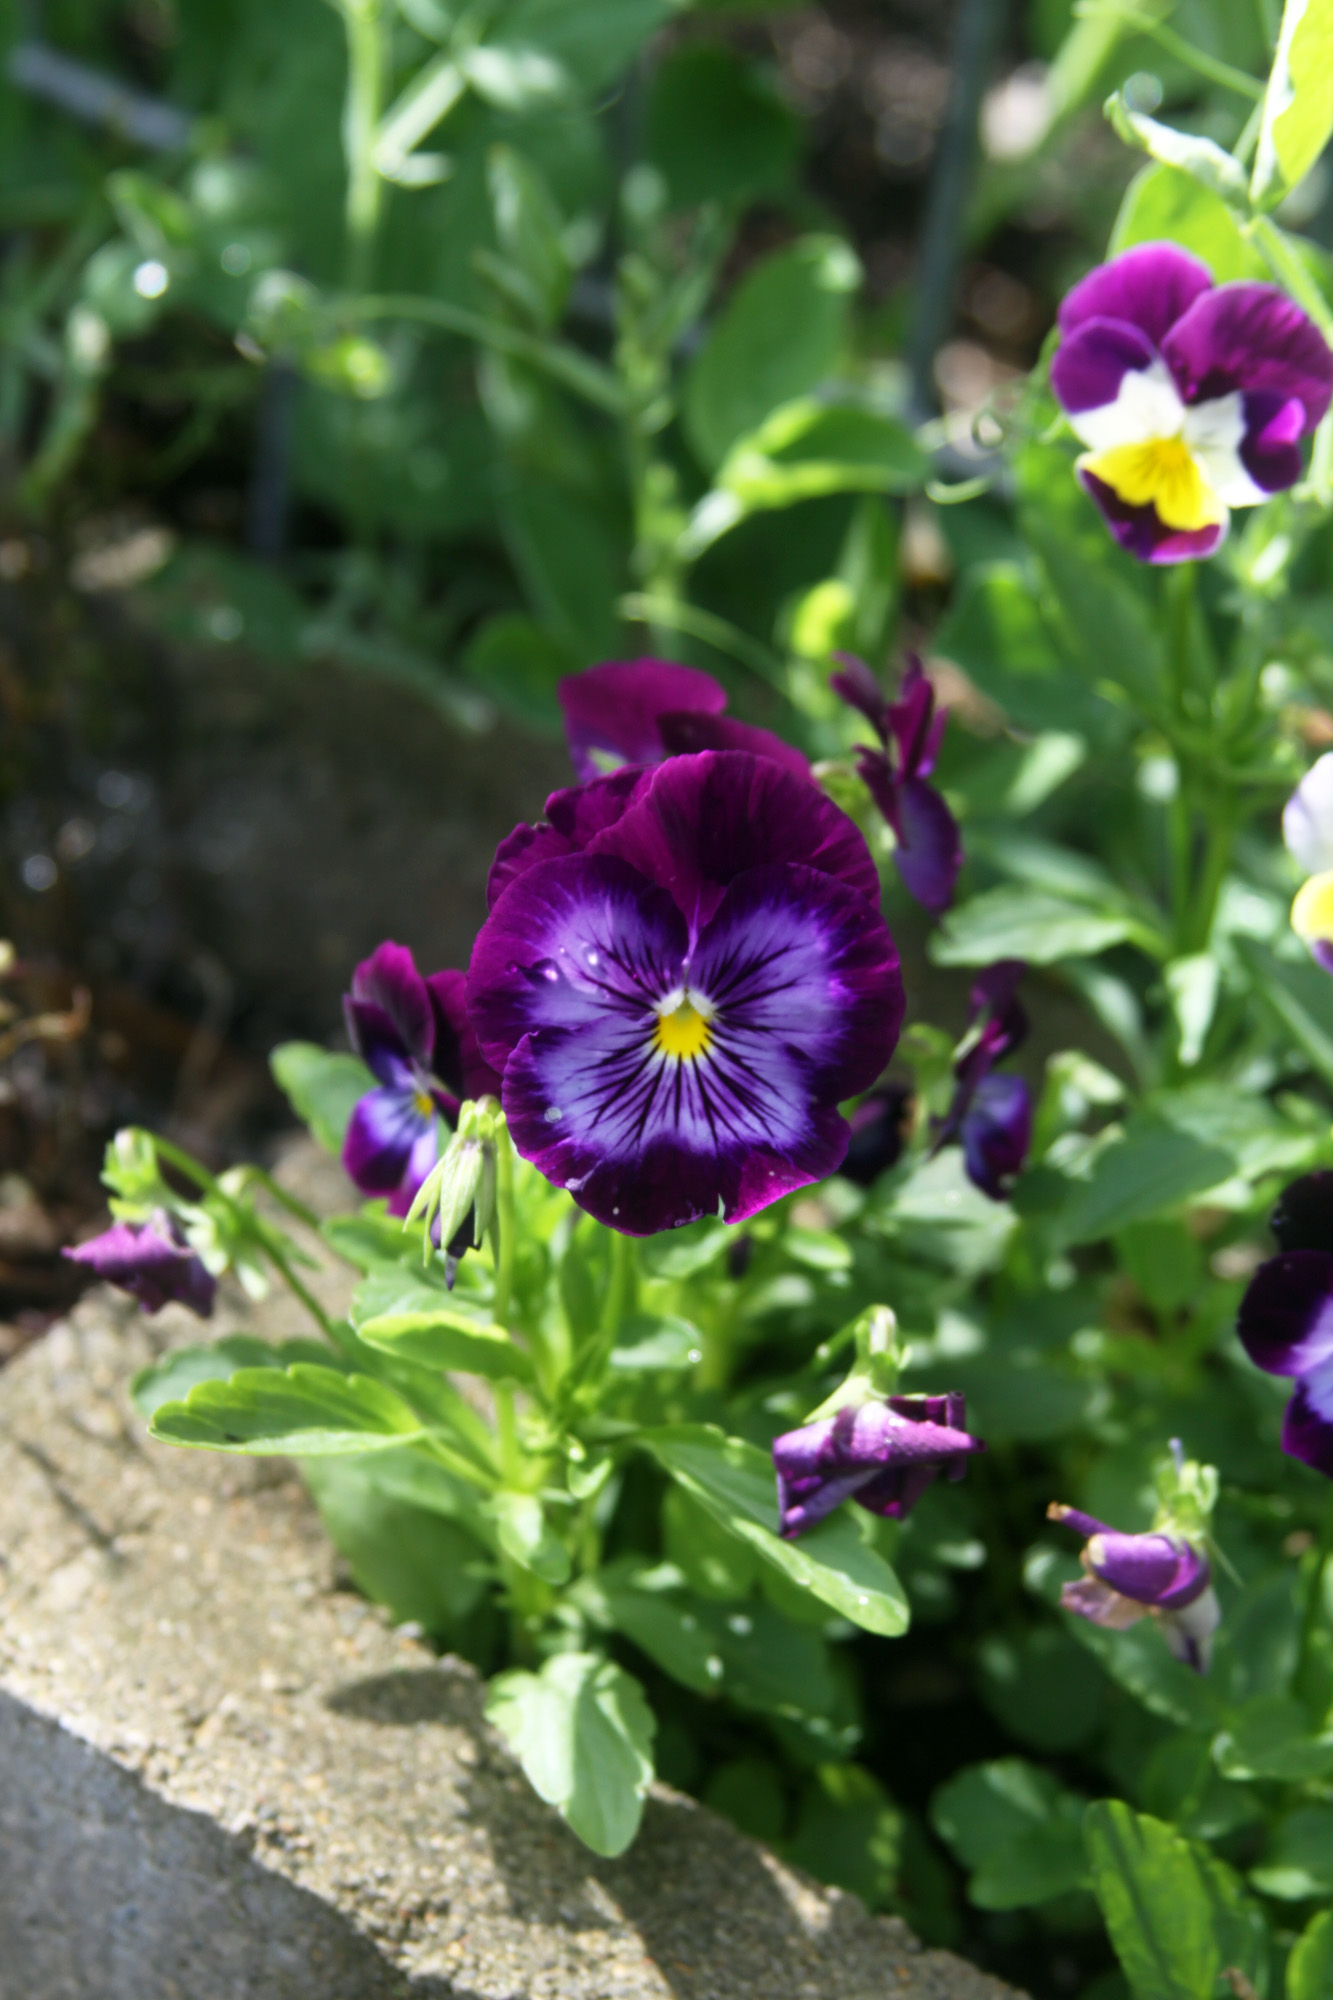 Self-Seeded Violas Growing in the Holes of My Cinder Block Raised Beds